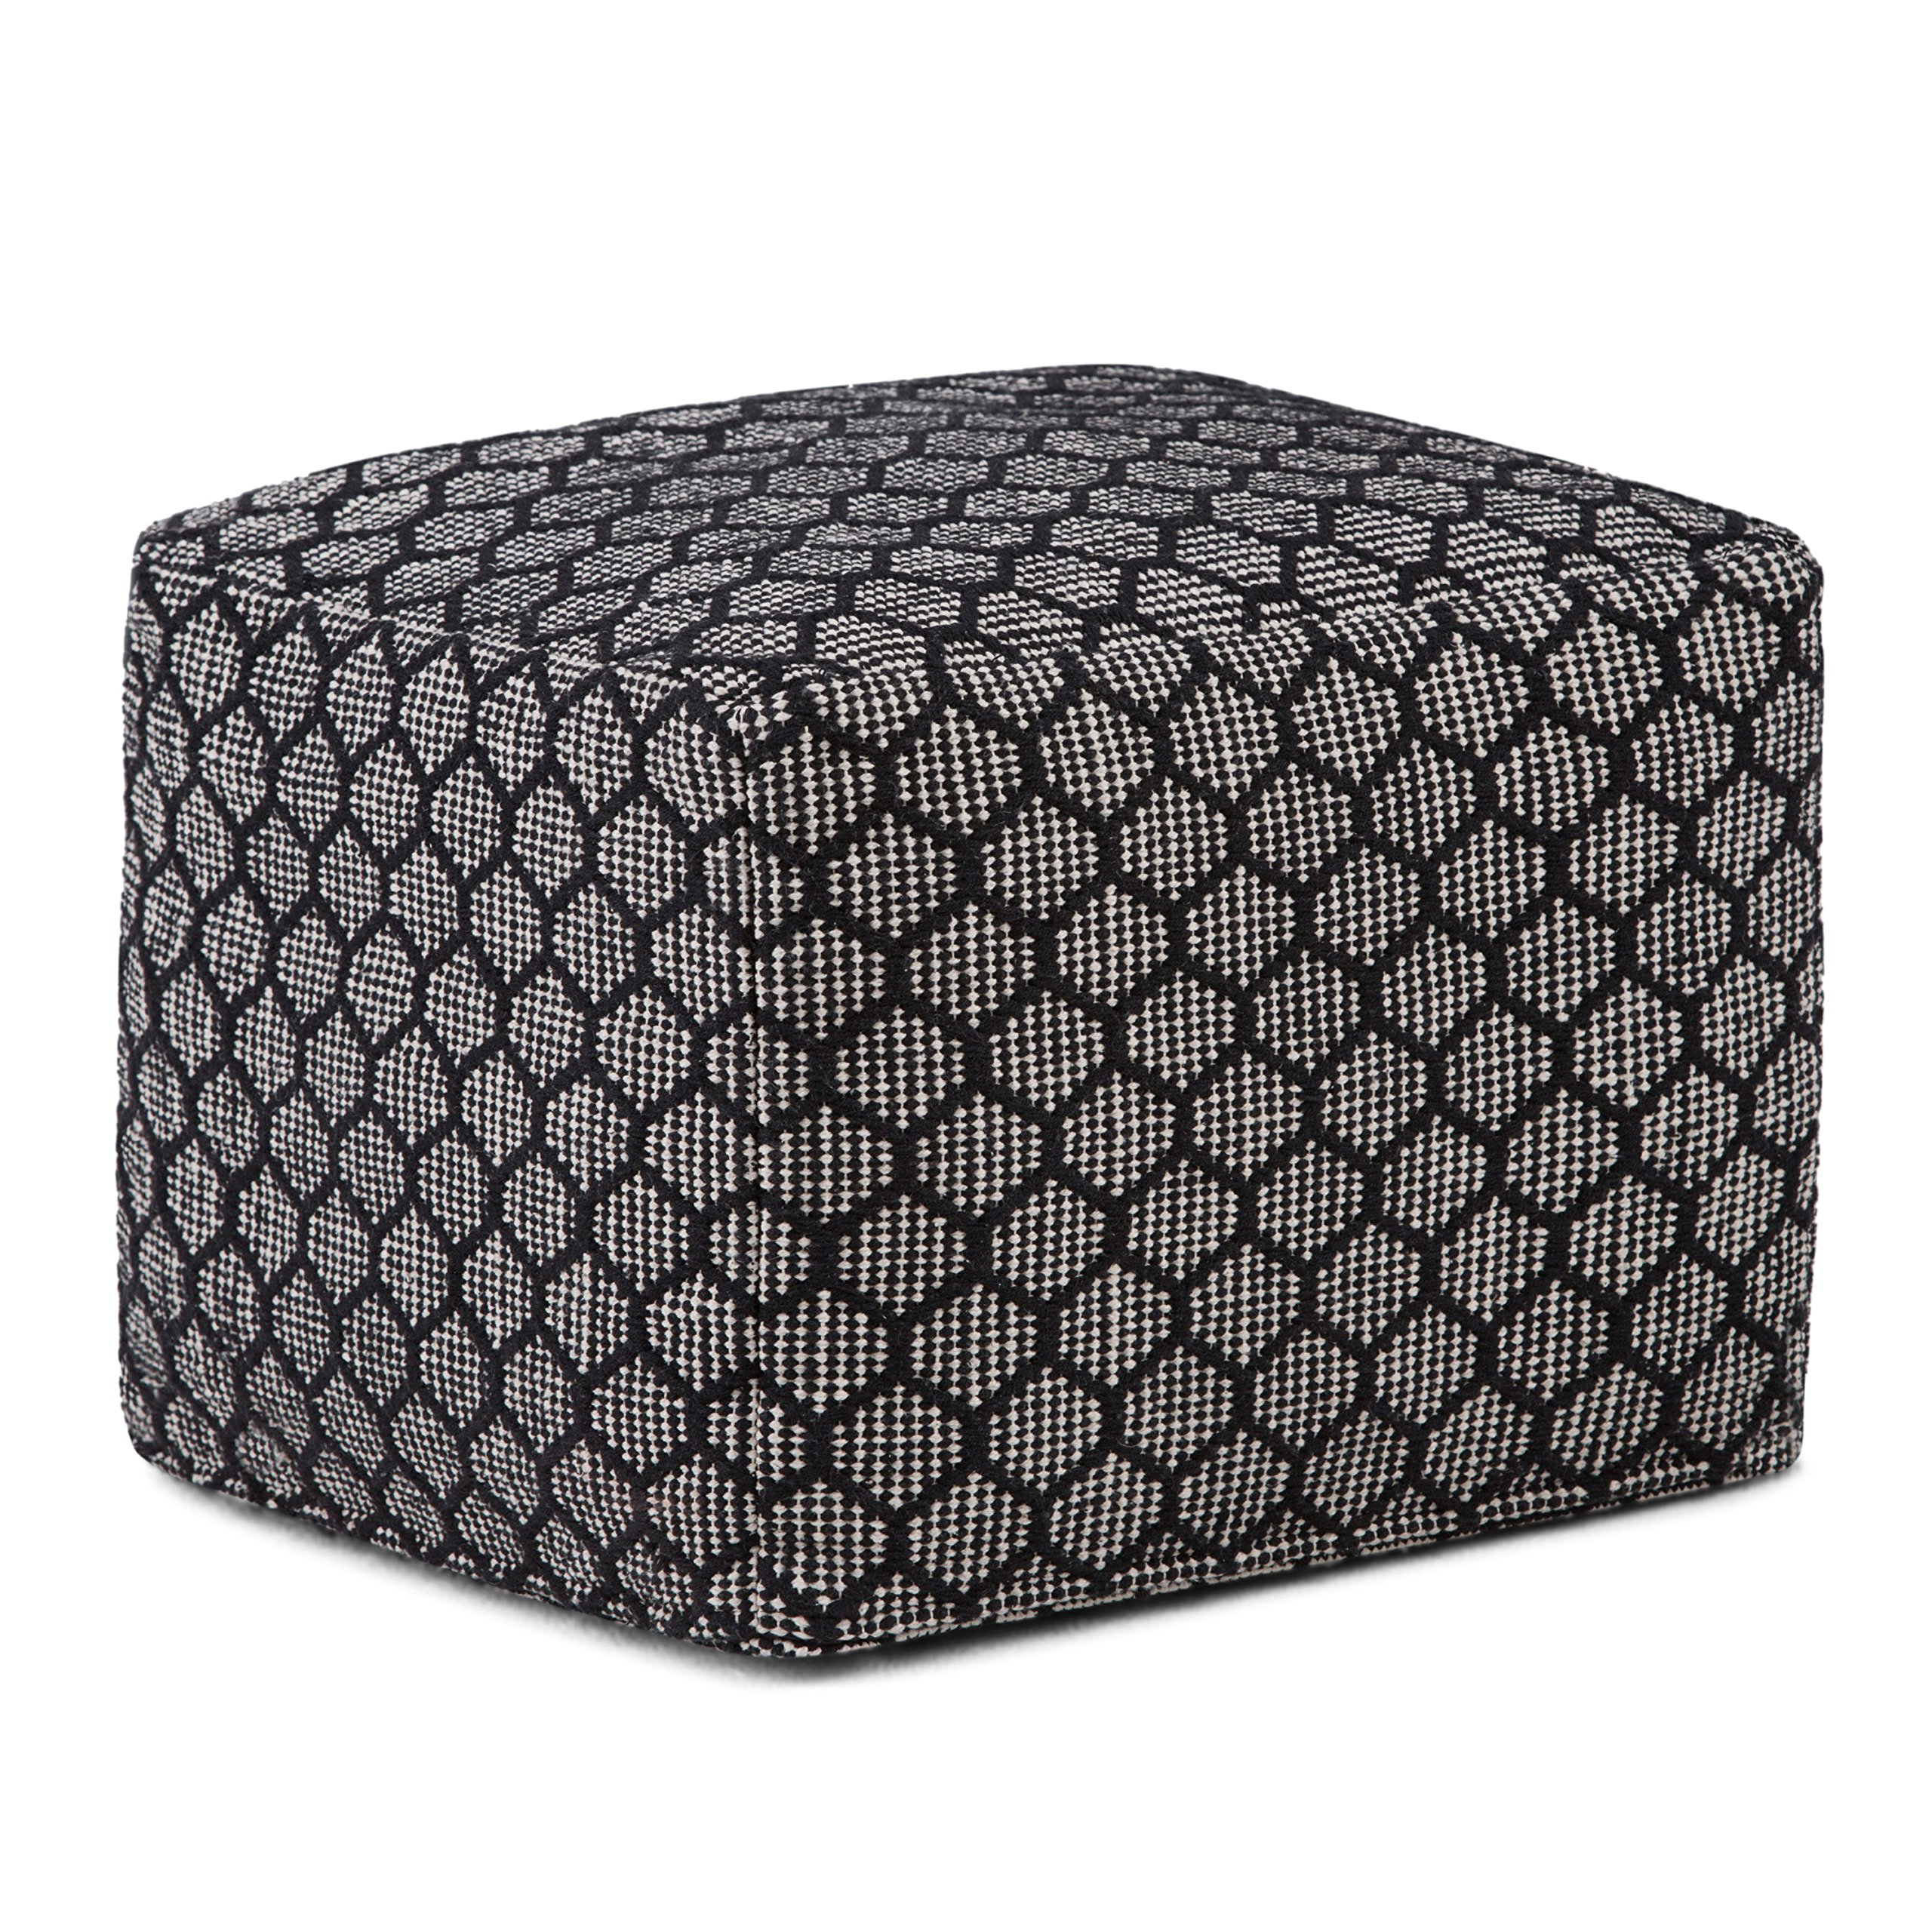 Simpli Home Simpson Square Pouf, Patterned Black and Natural